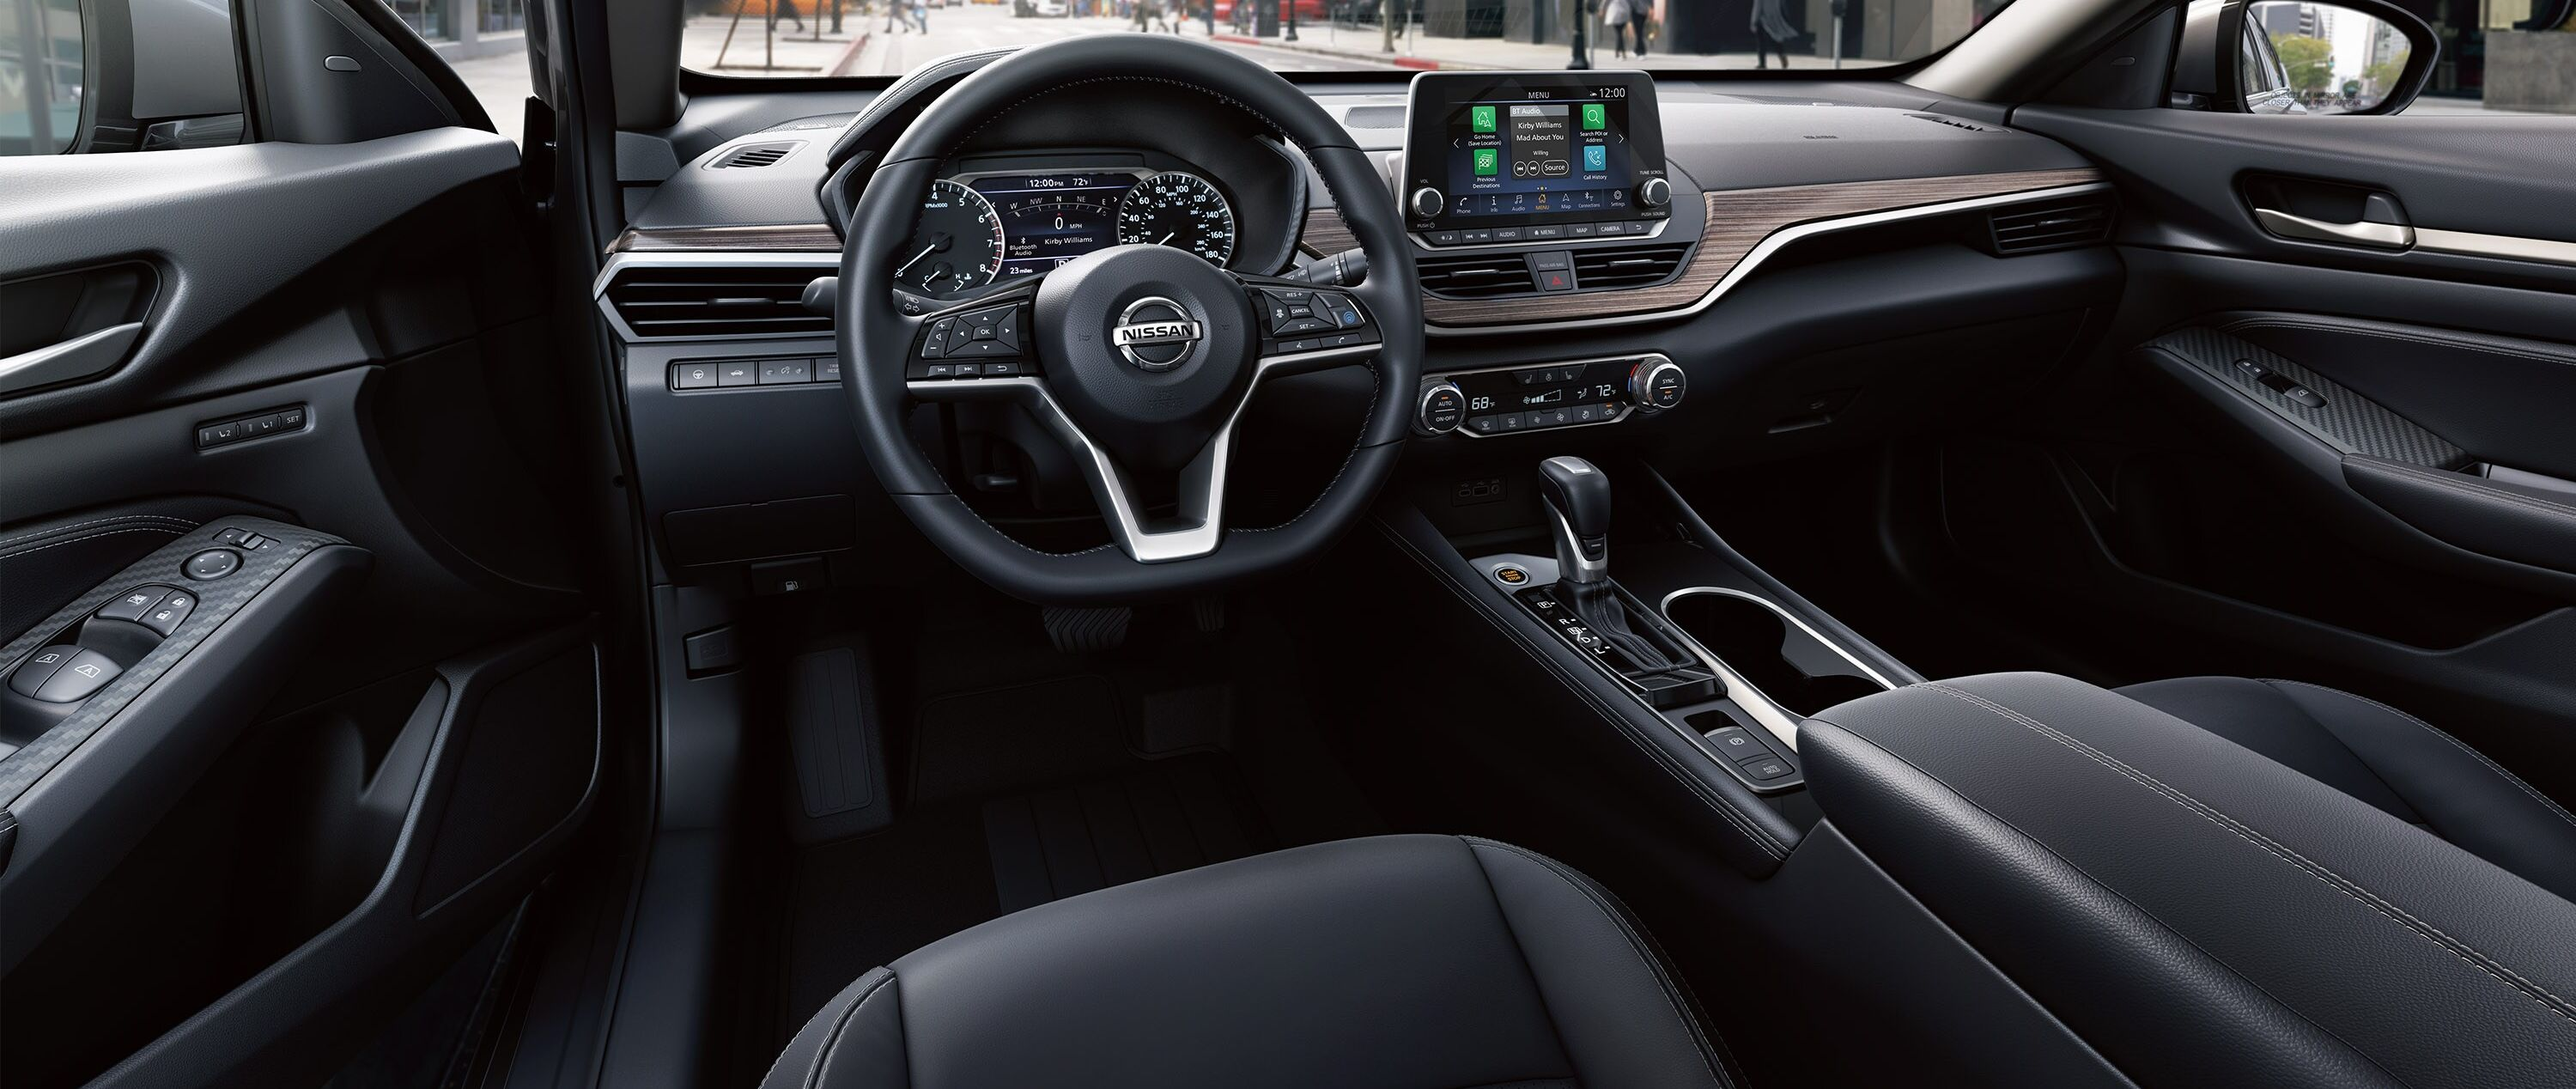 The Spacious Interior of the 2019 Altima